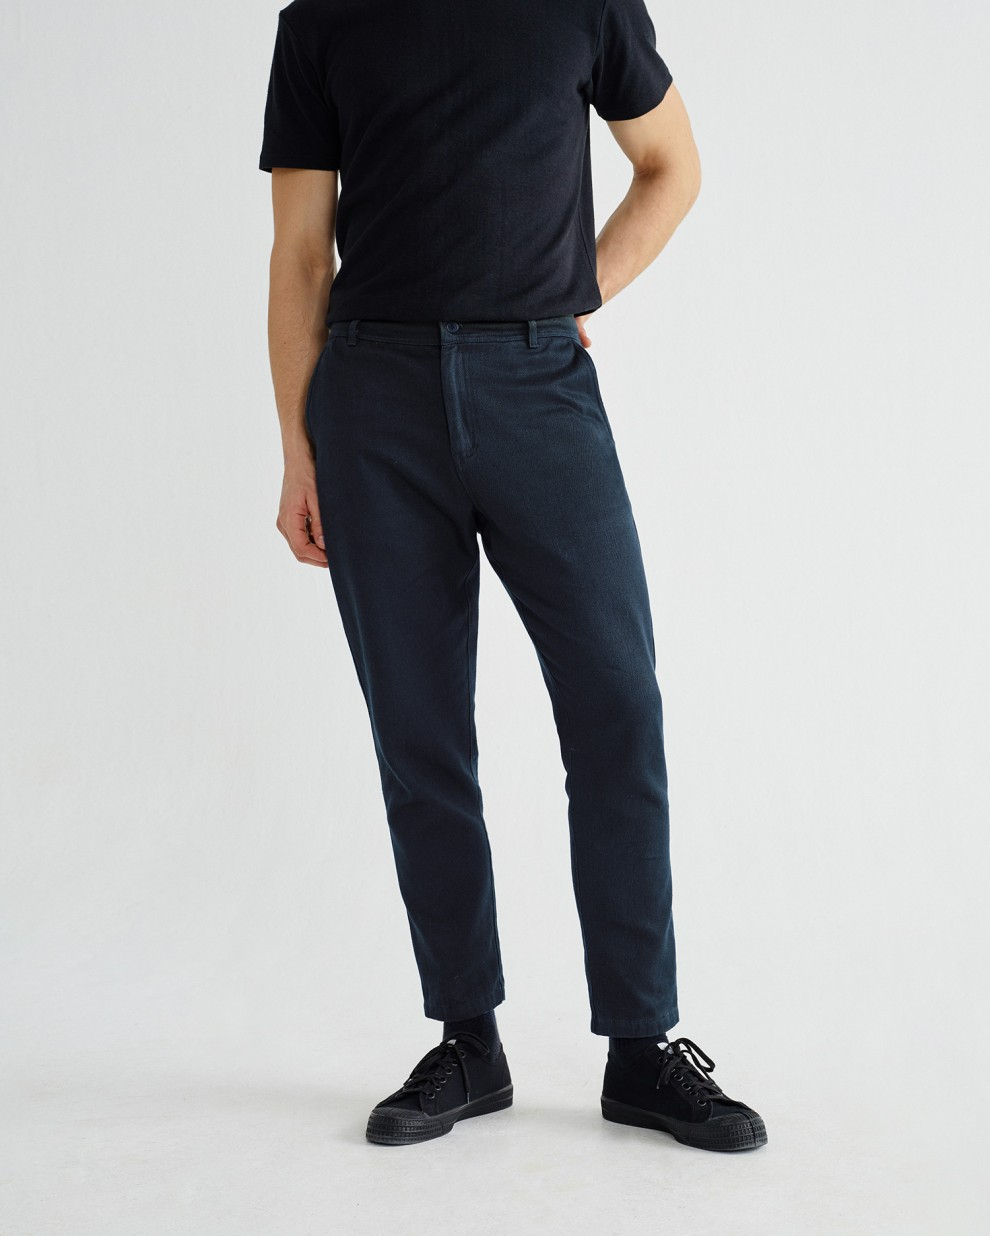 NAVY MARCELINO PANTS